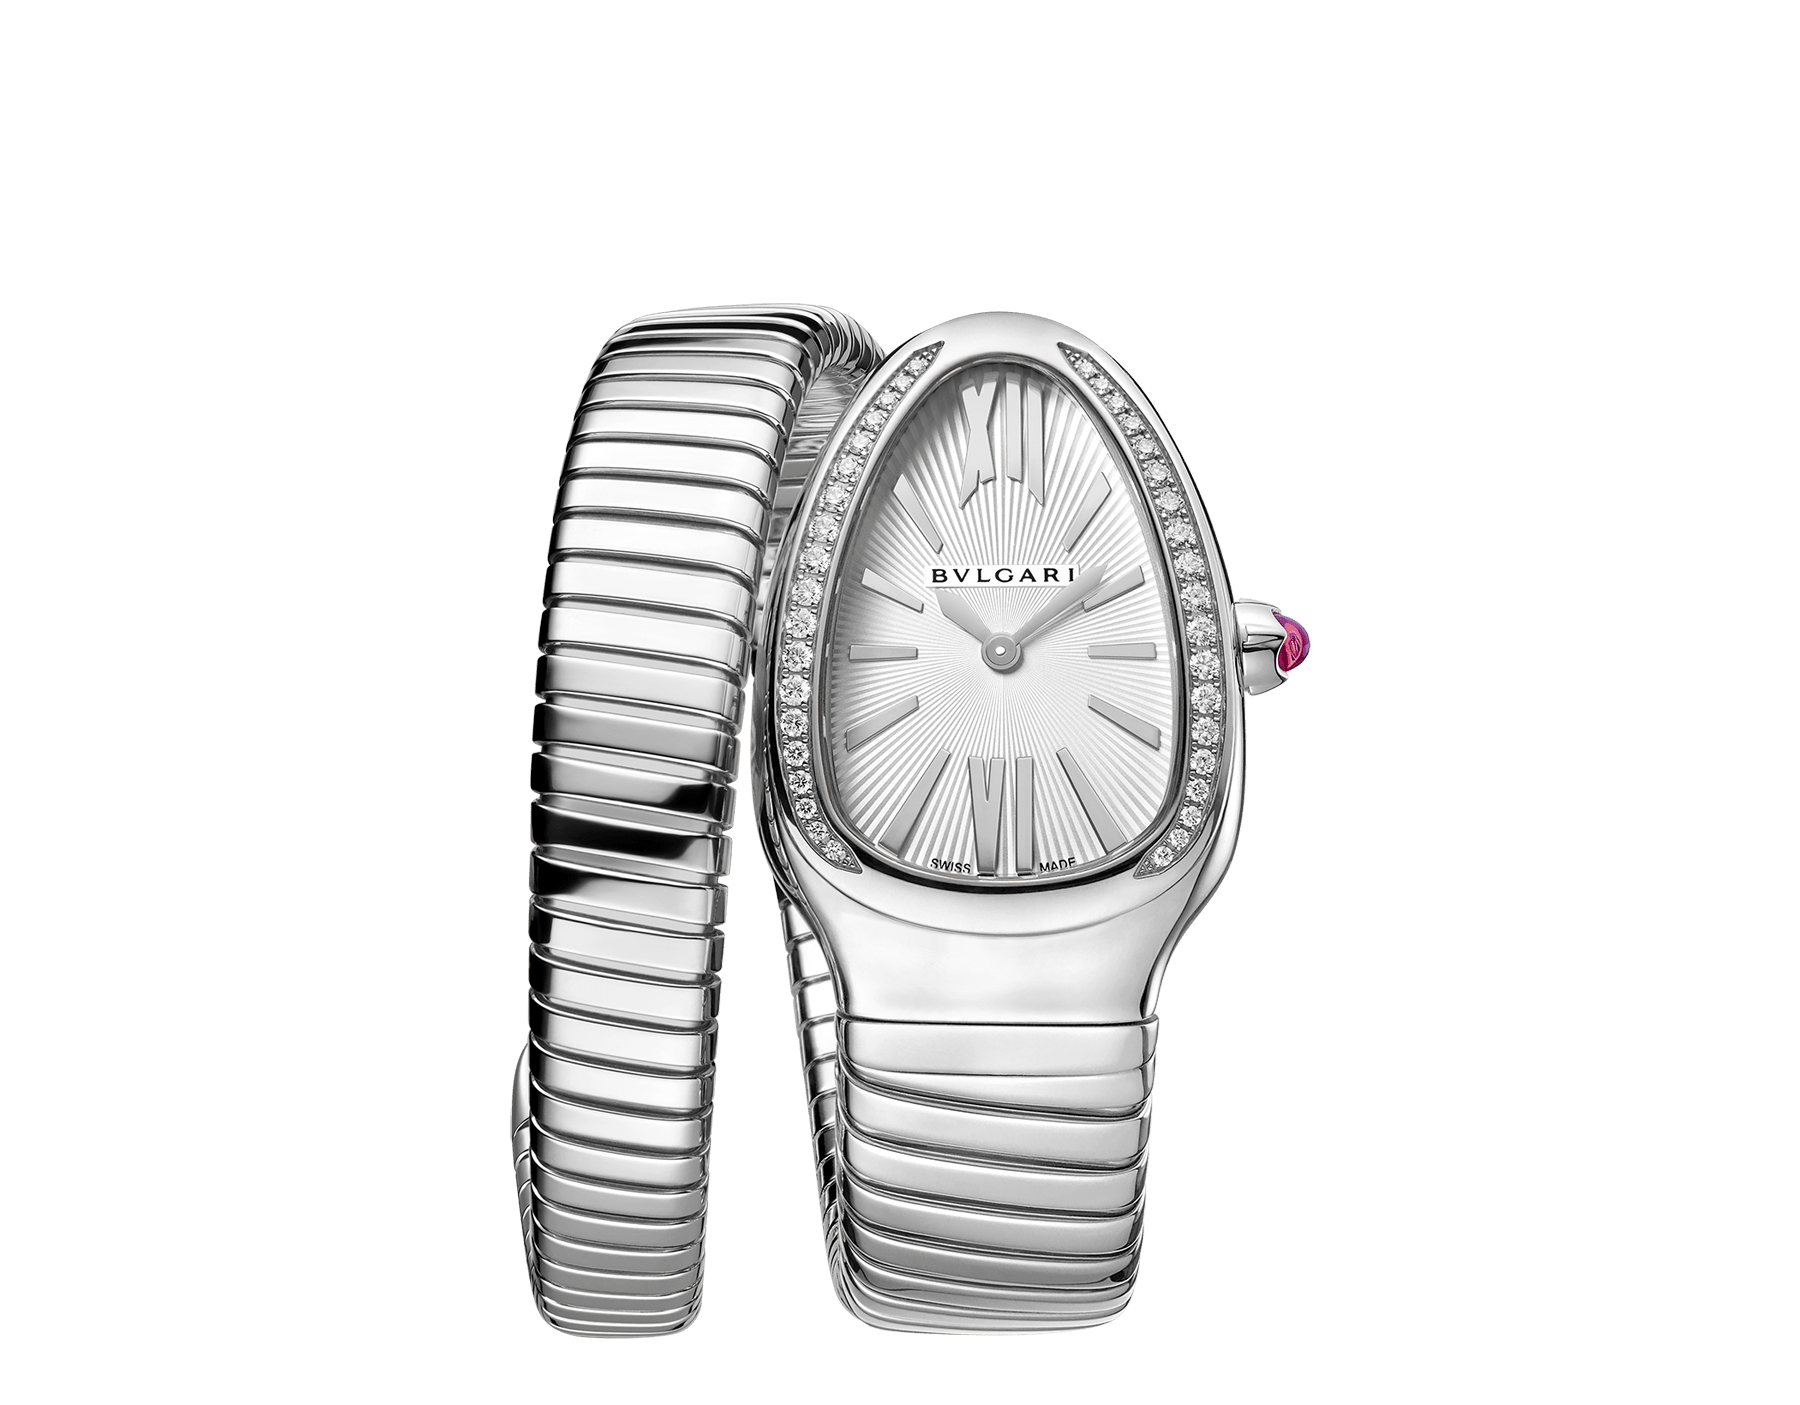 Serpenti Tubogas single spiral watch in stainless steel case and bracelet, bezel set with brilliant cut diamonds and silver opaline dial. Large Size. SrpntTubogas-white-dial2 image 1